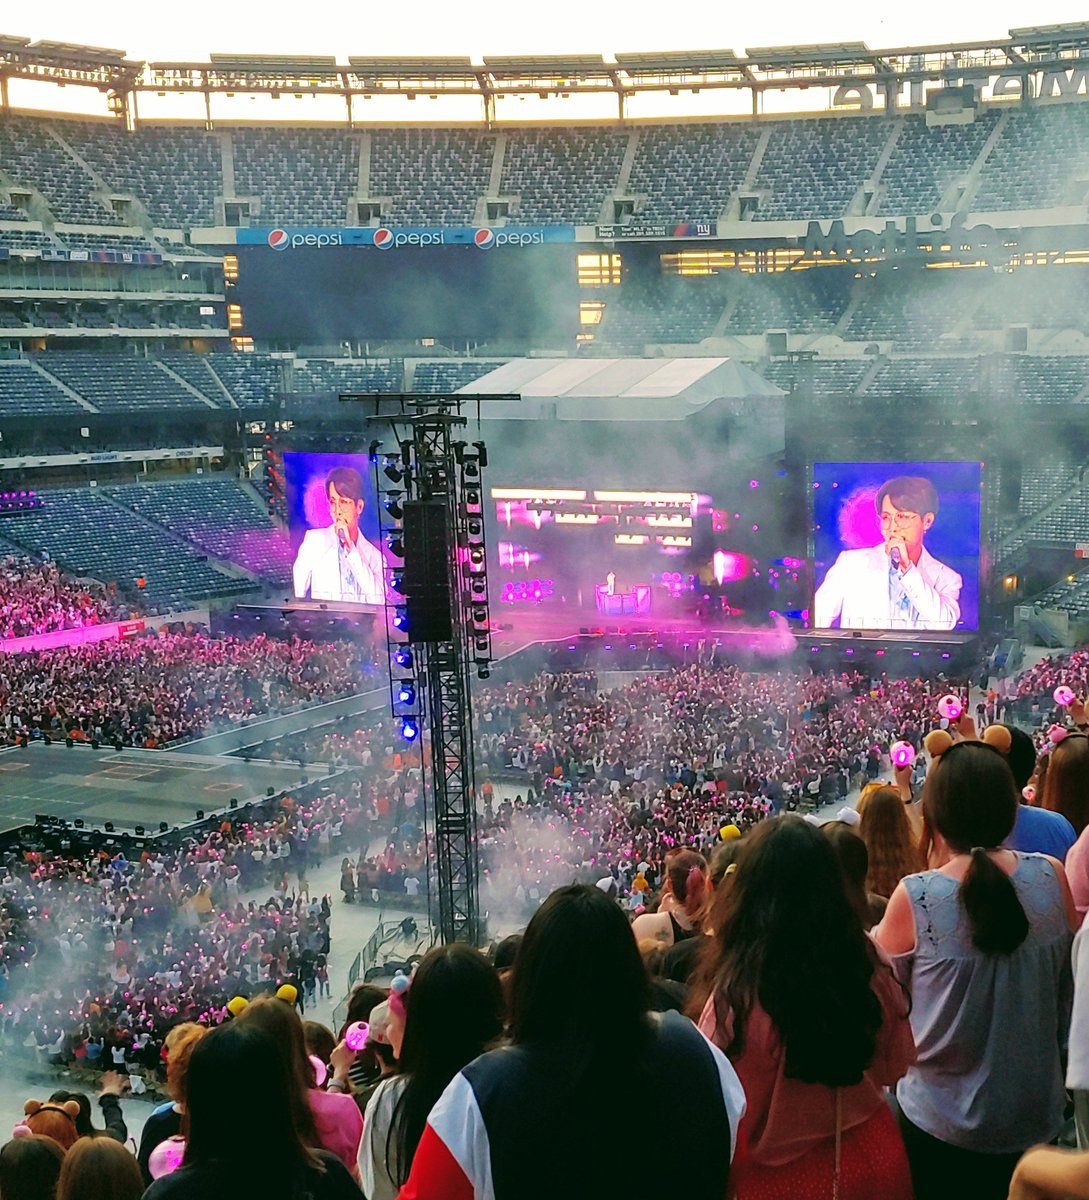 I had problems getting pics once it got dark. The lights just washed out the screens and everything. But I love this one I got off Jhope @BTS_twt #BTSatMetlife<br>http://pic.twitter.com/uAkUMcliLv